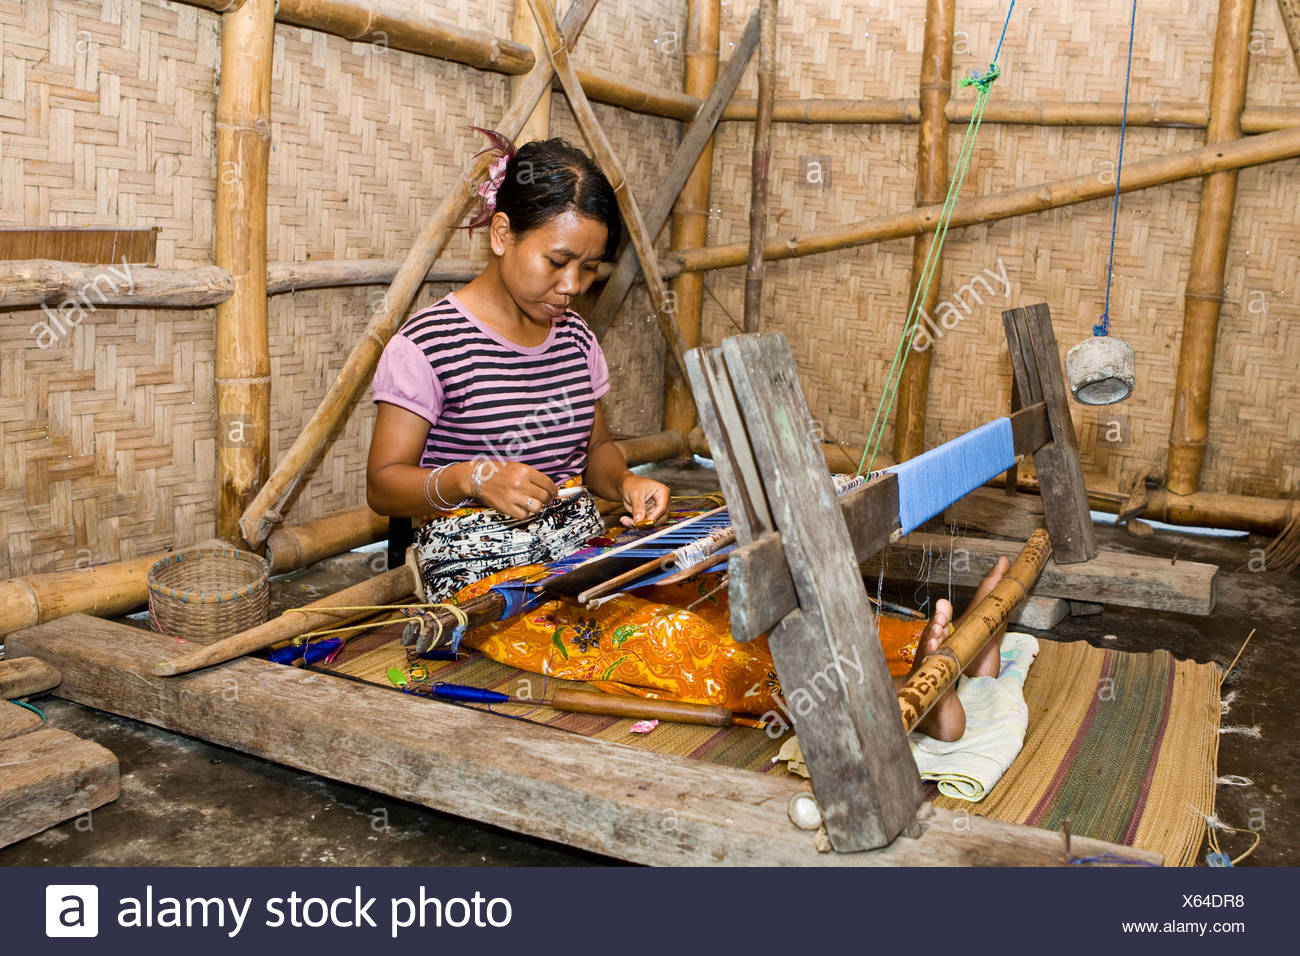 Woman weaving textiles in the traditional way at an old loom, Tete Batu, Lesser Sunda Islands, Indonesia, Asia - Stock Image